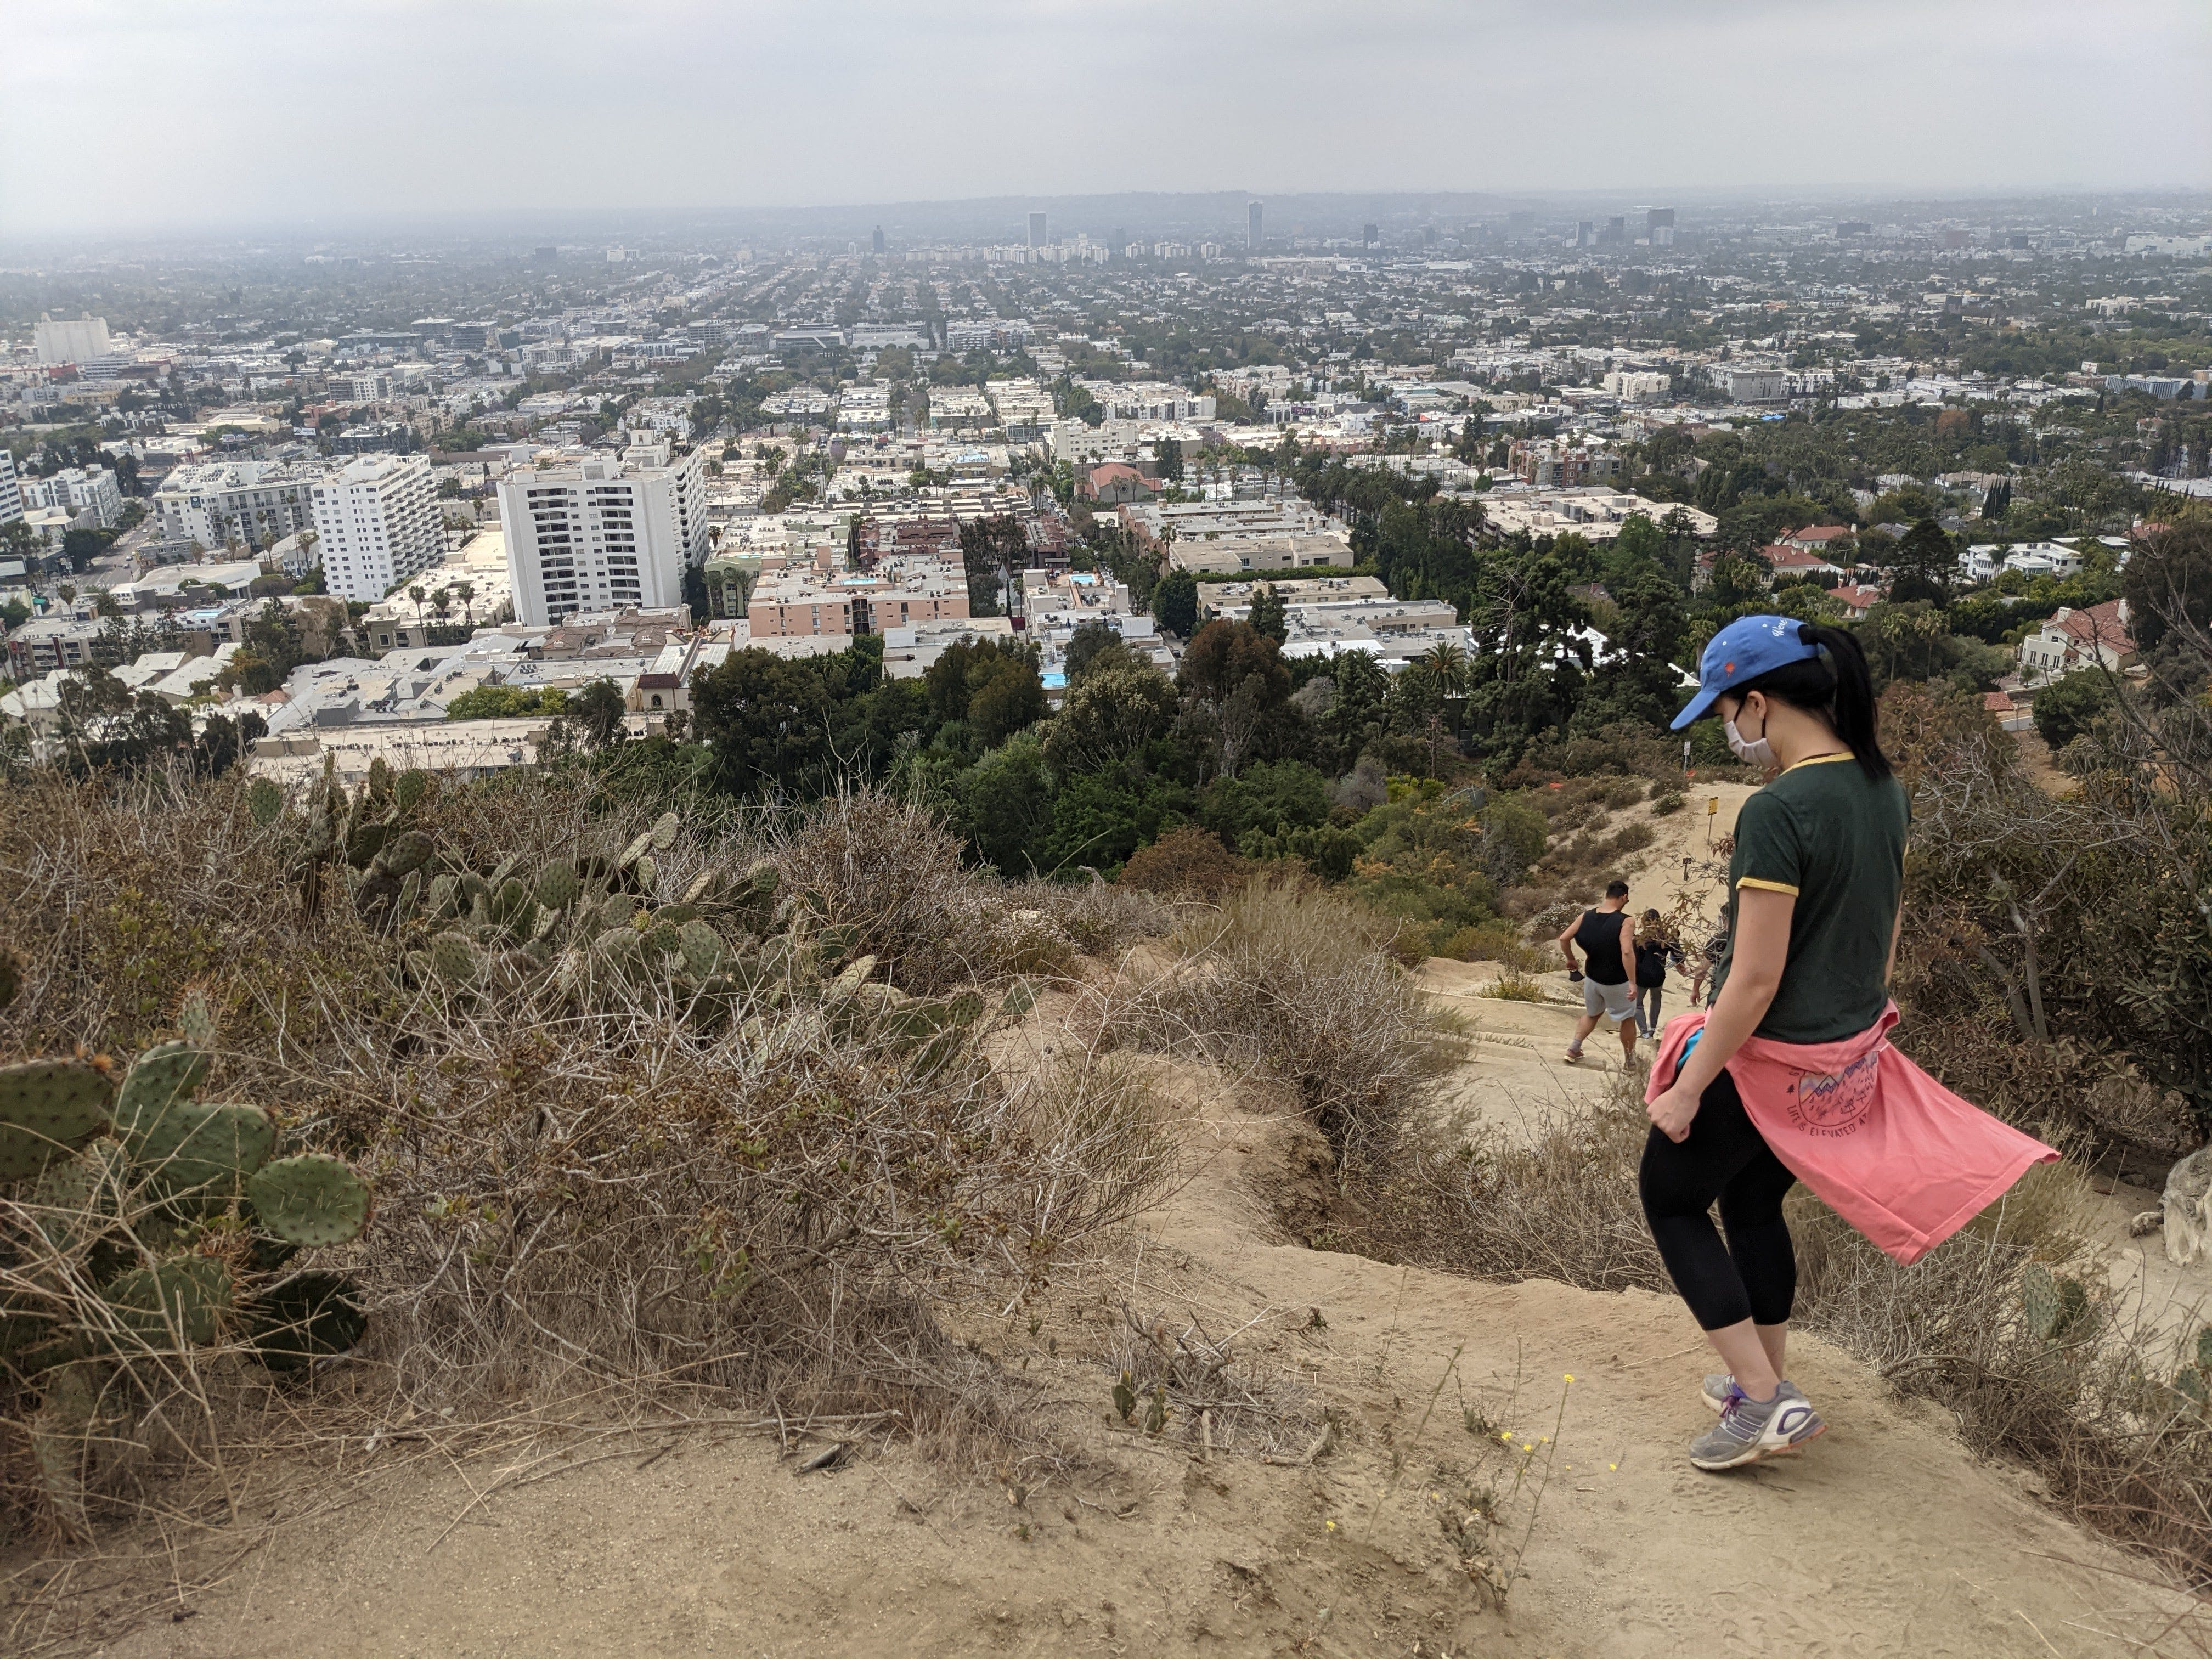 Hiker about to start down a trail at Runyon Canyon in Los Angeles